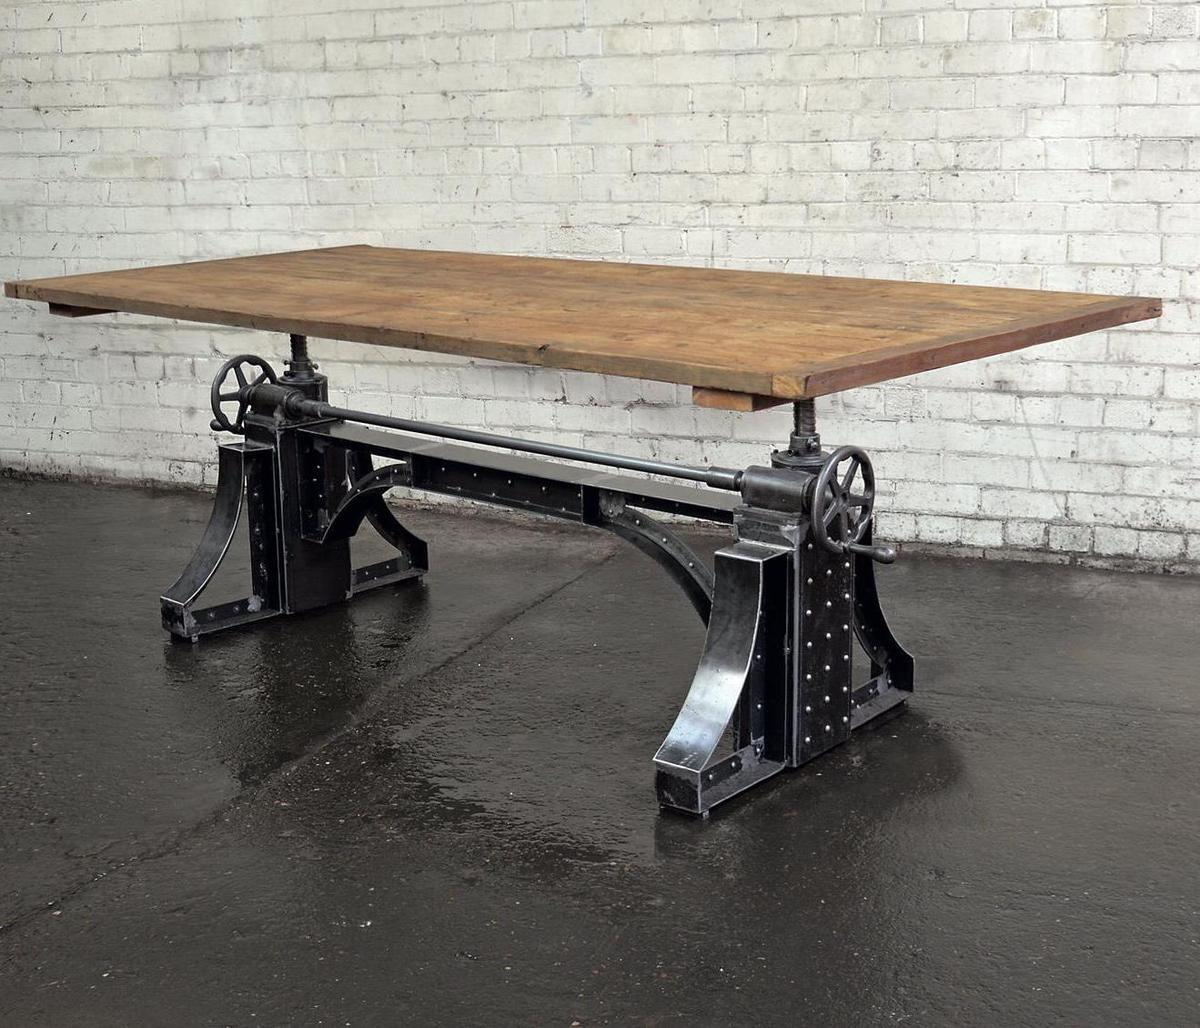 Industrial Crank Base Dining Table Rustic In Ol6 Tameside For 1 602 00 For Sale Shpock